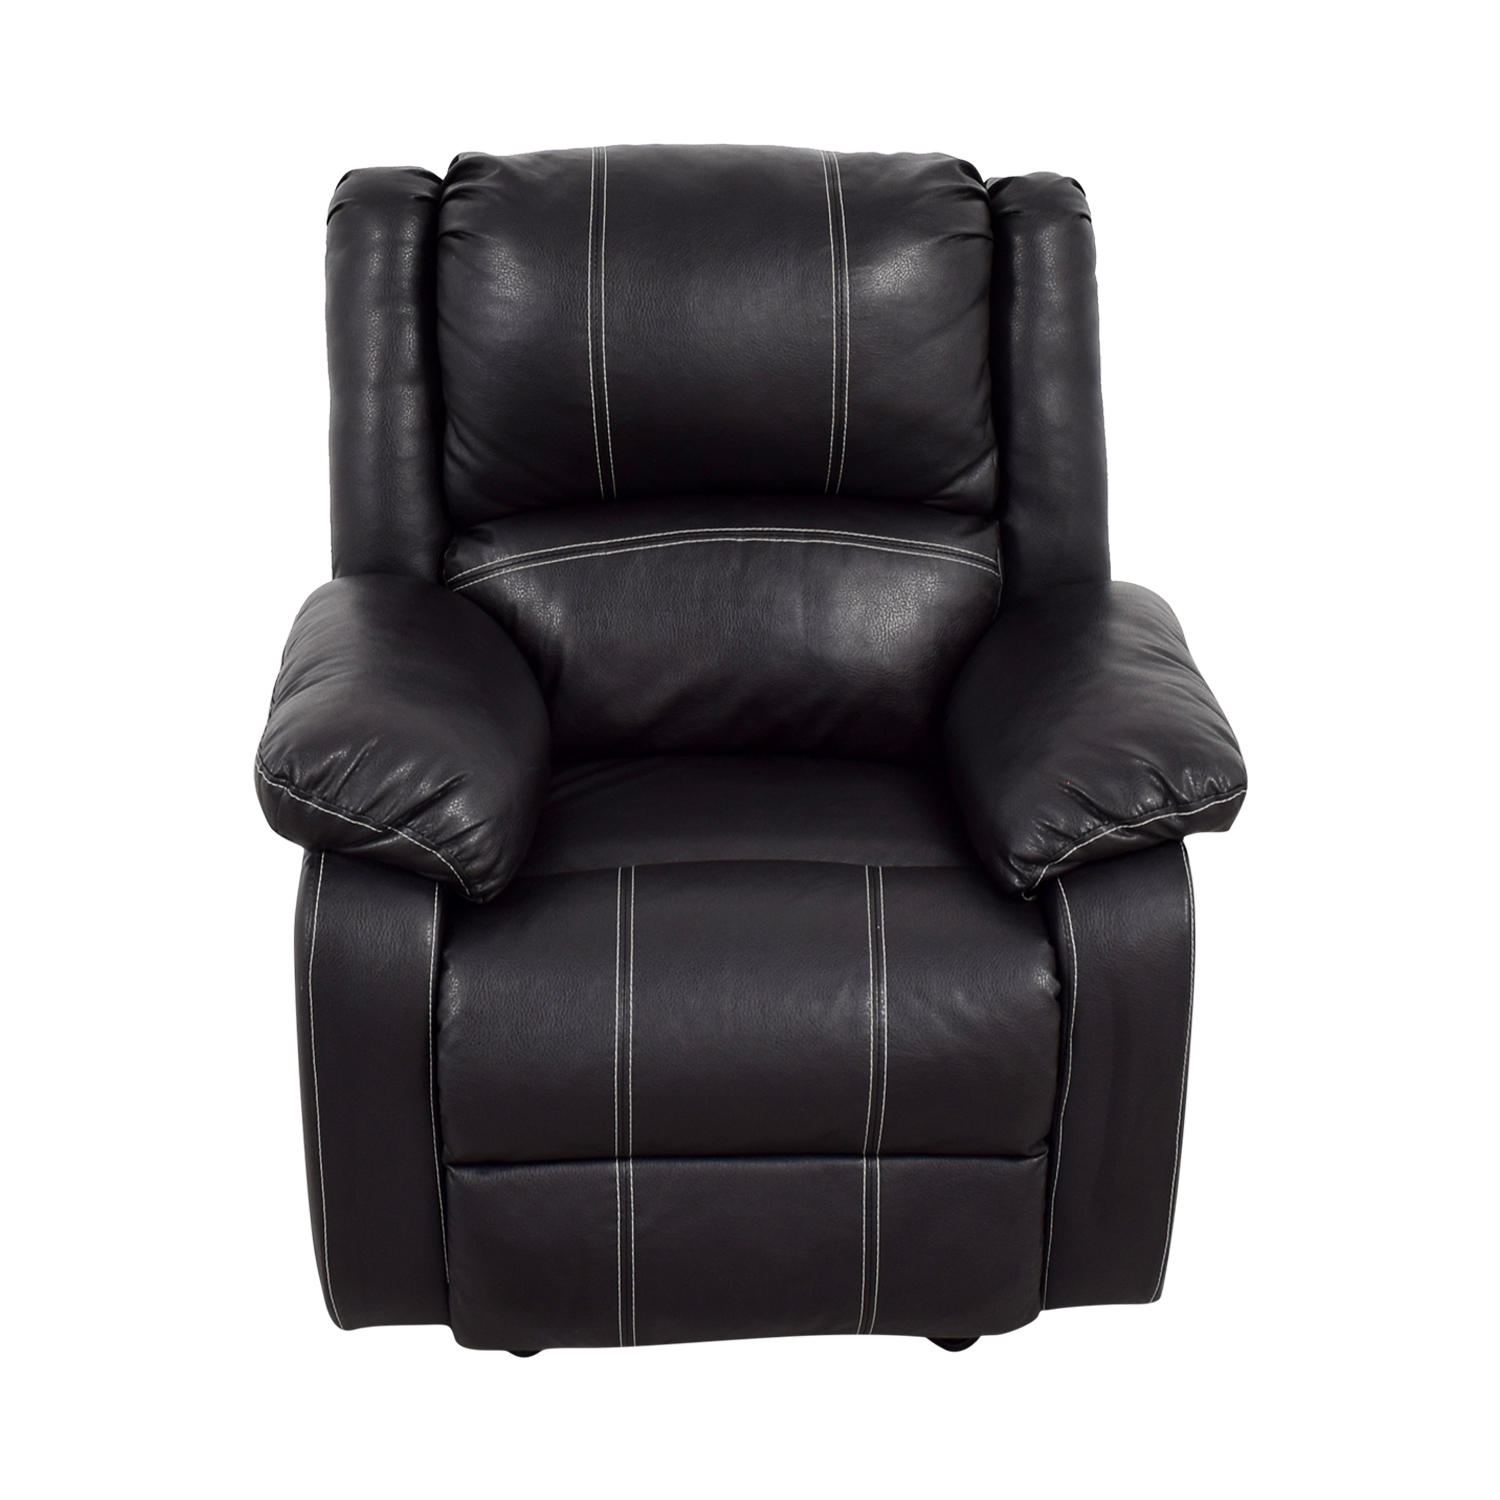 Cheap Recliner Sofas For Sale Black Leather Reclining: Recliners: Used Recliners For Sale